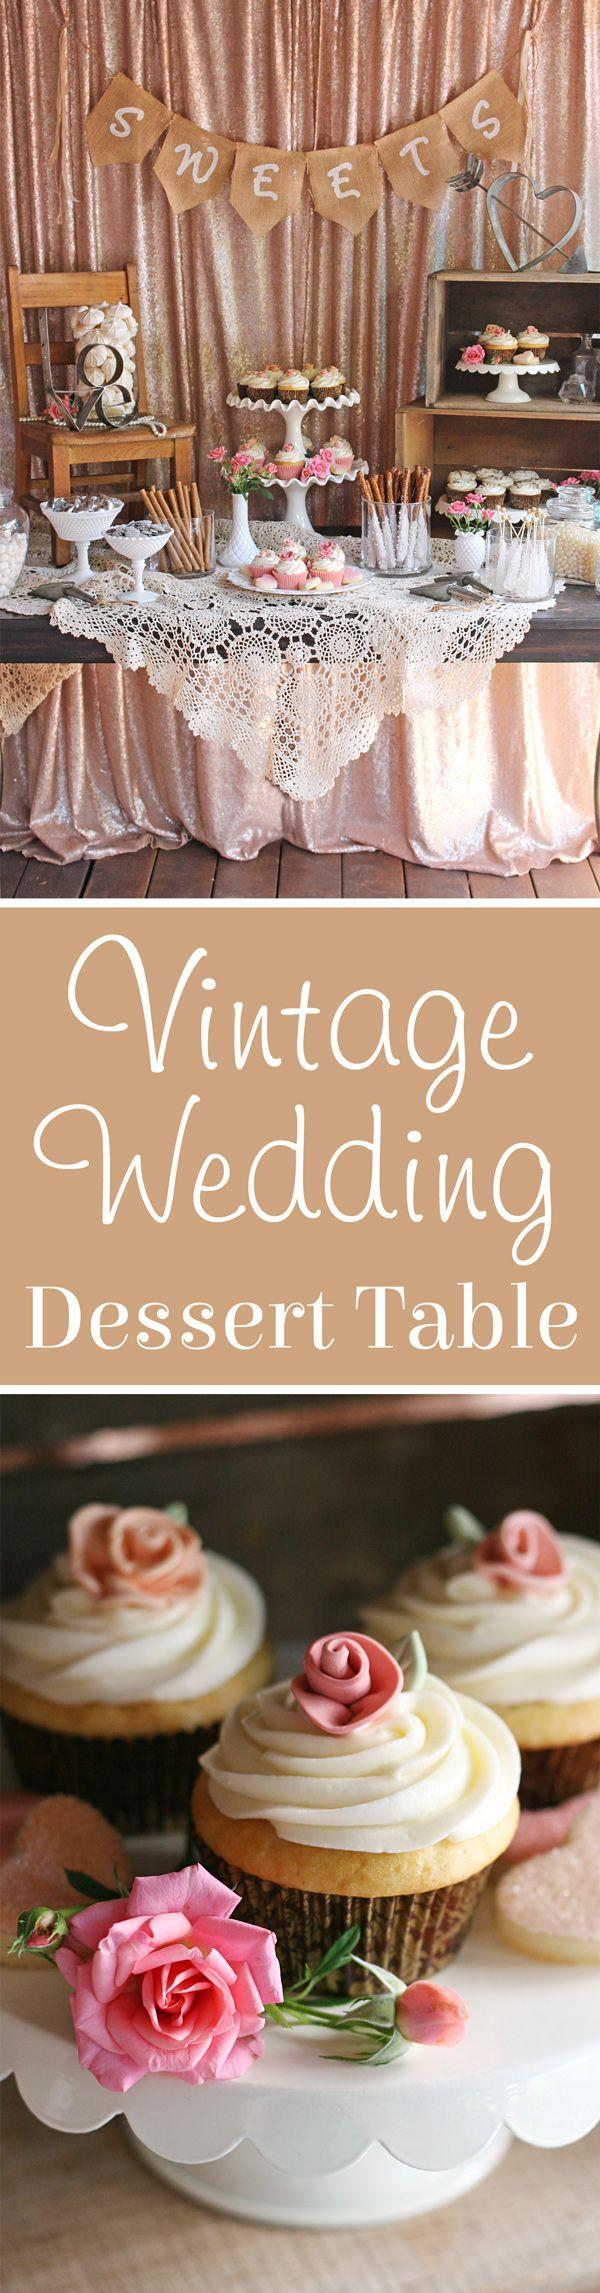 Nozze - Vintage Wedding Dessert Table